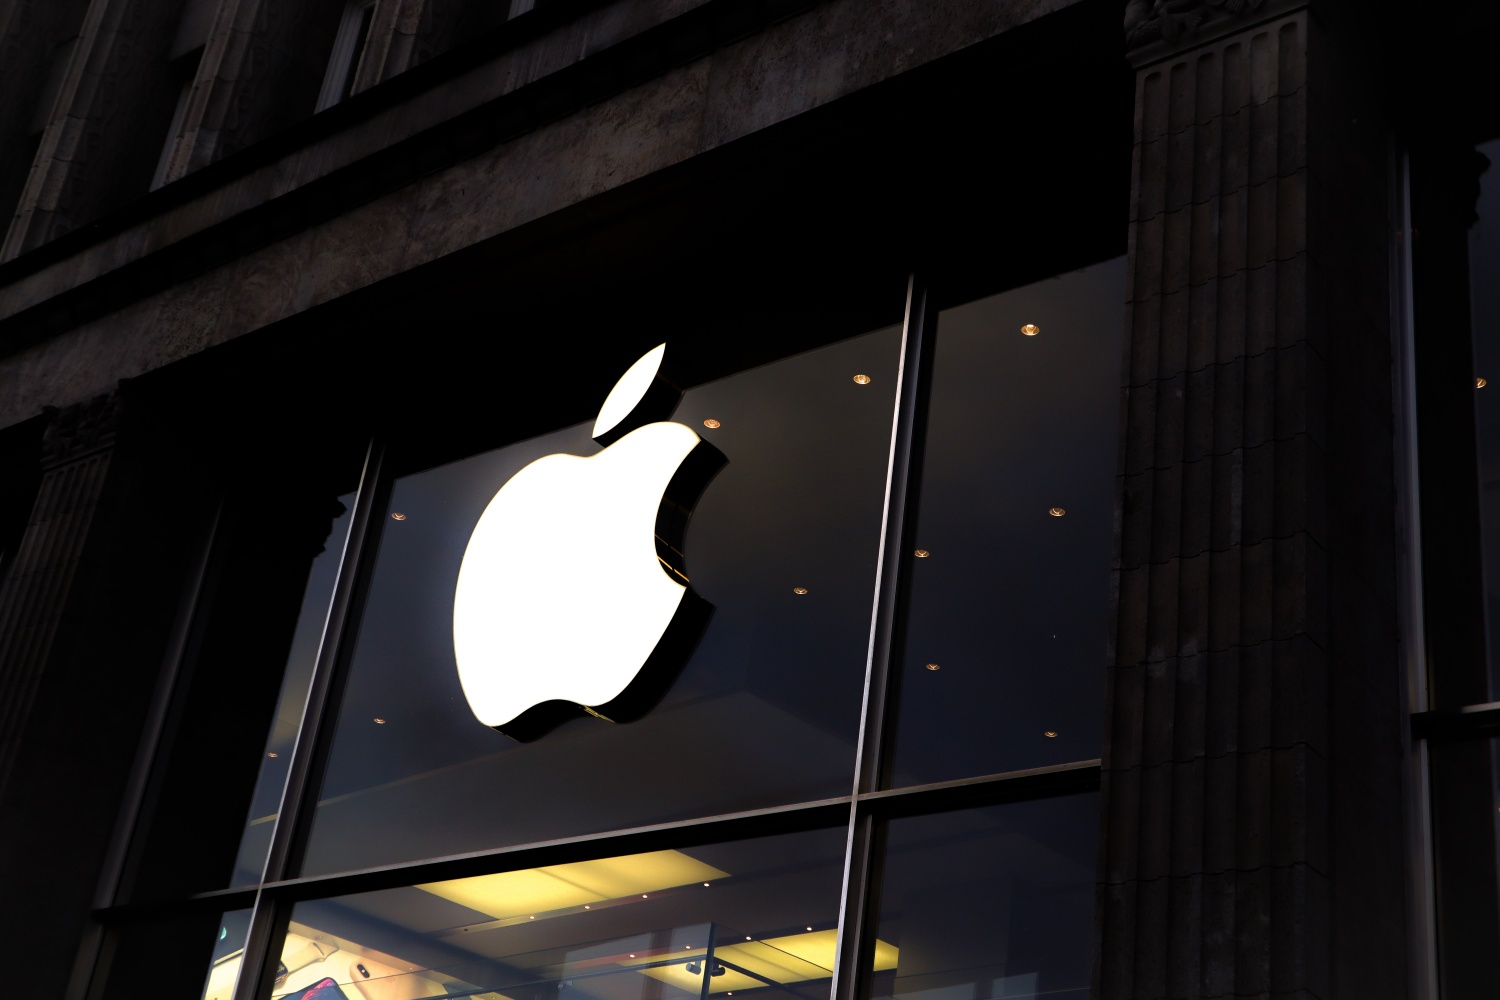 Apple Faces Patent Infringement Lawsuit by Bell Northern Research for Basic Mobile Wireless Technology